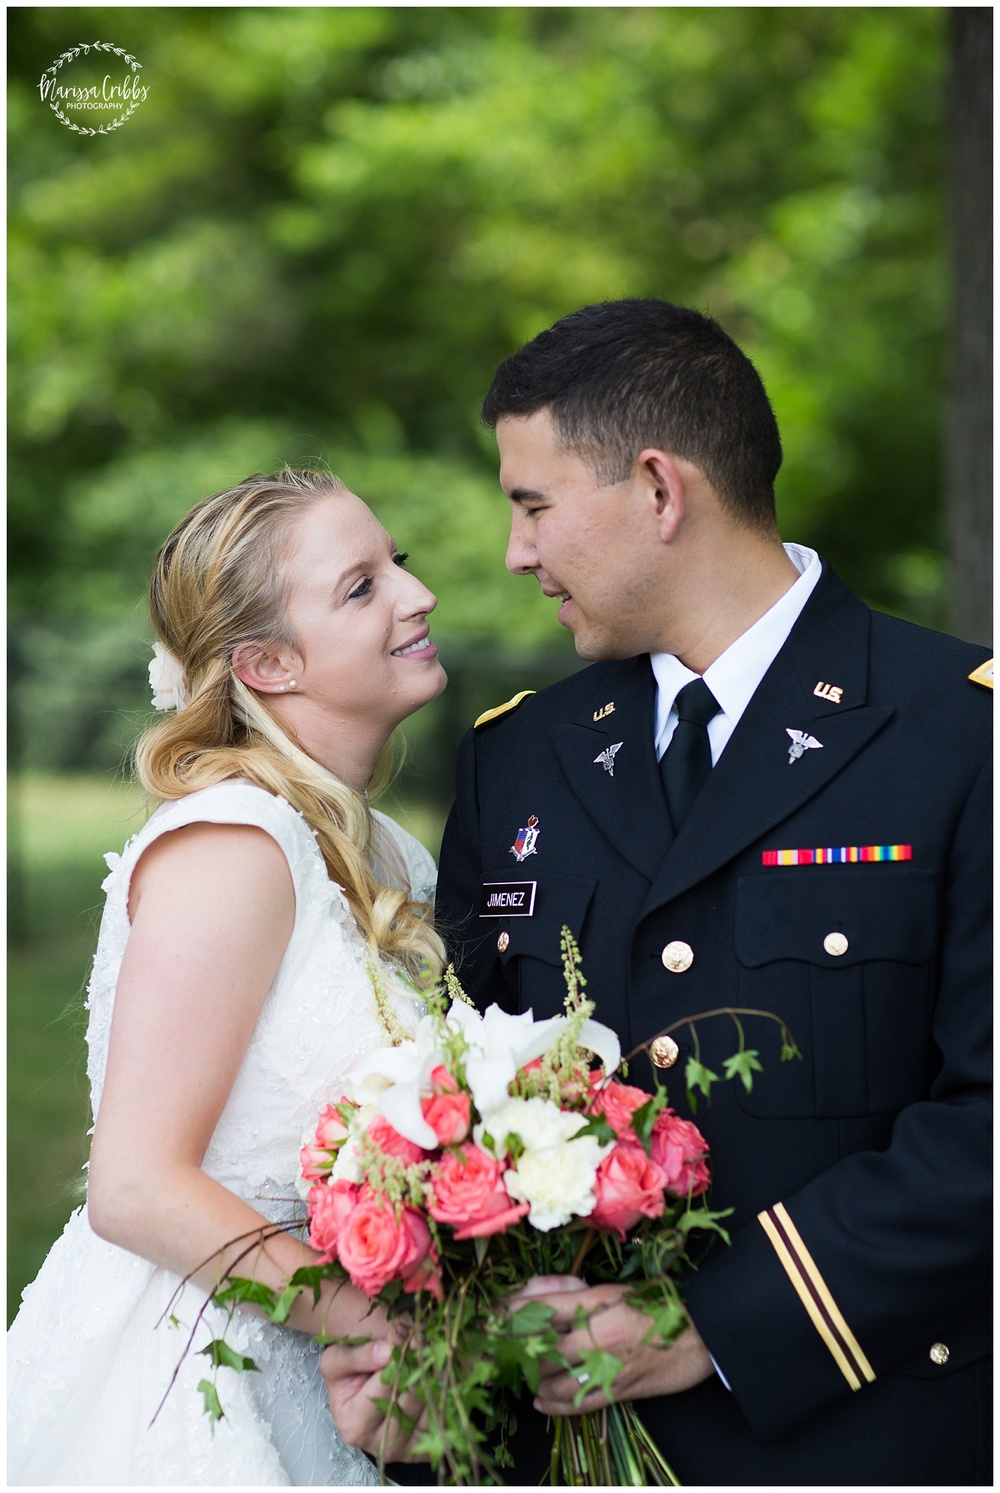 Jimenez Wedding | Marissa Cribbs Photography_0294.jpg